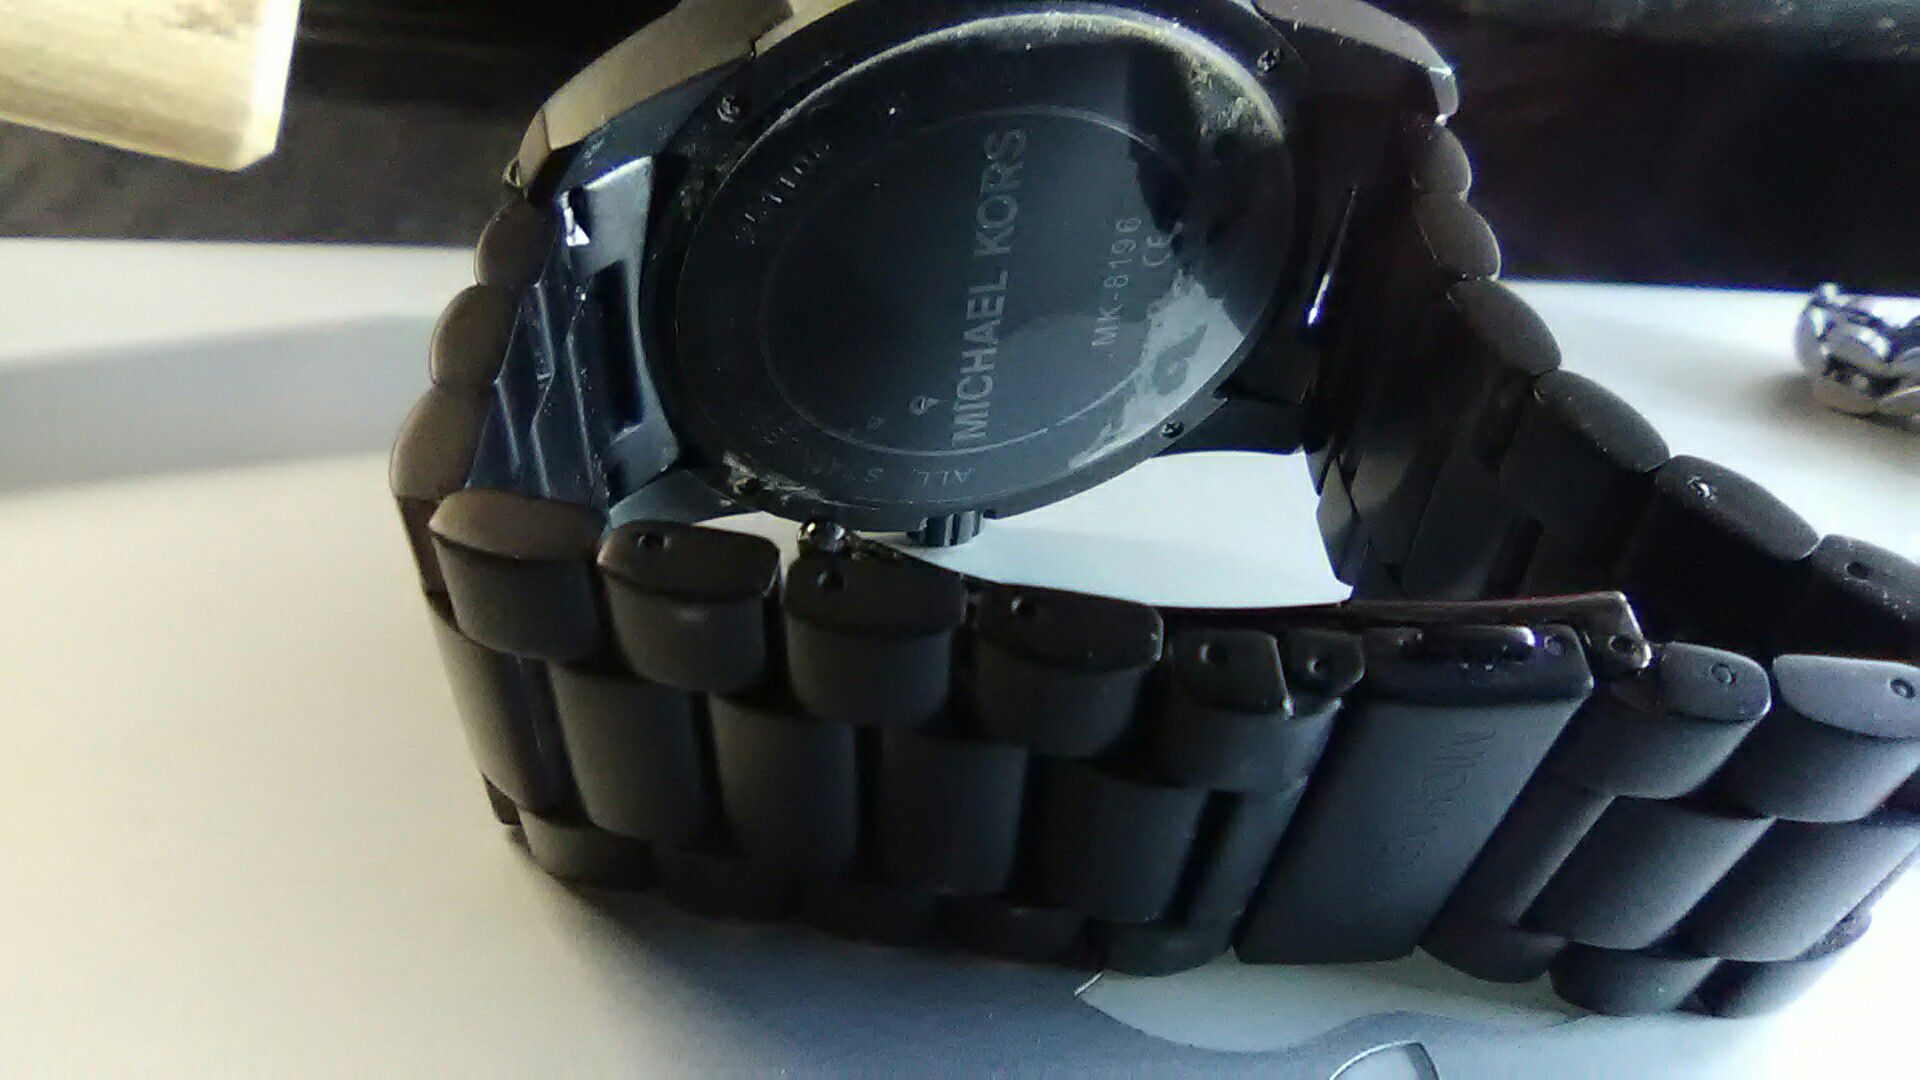 Michael Kors men's designer watch. Great condition lightly used.